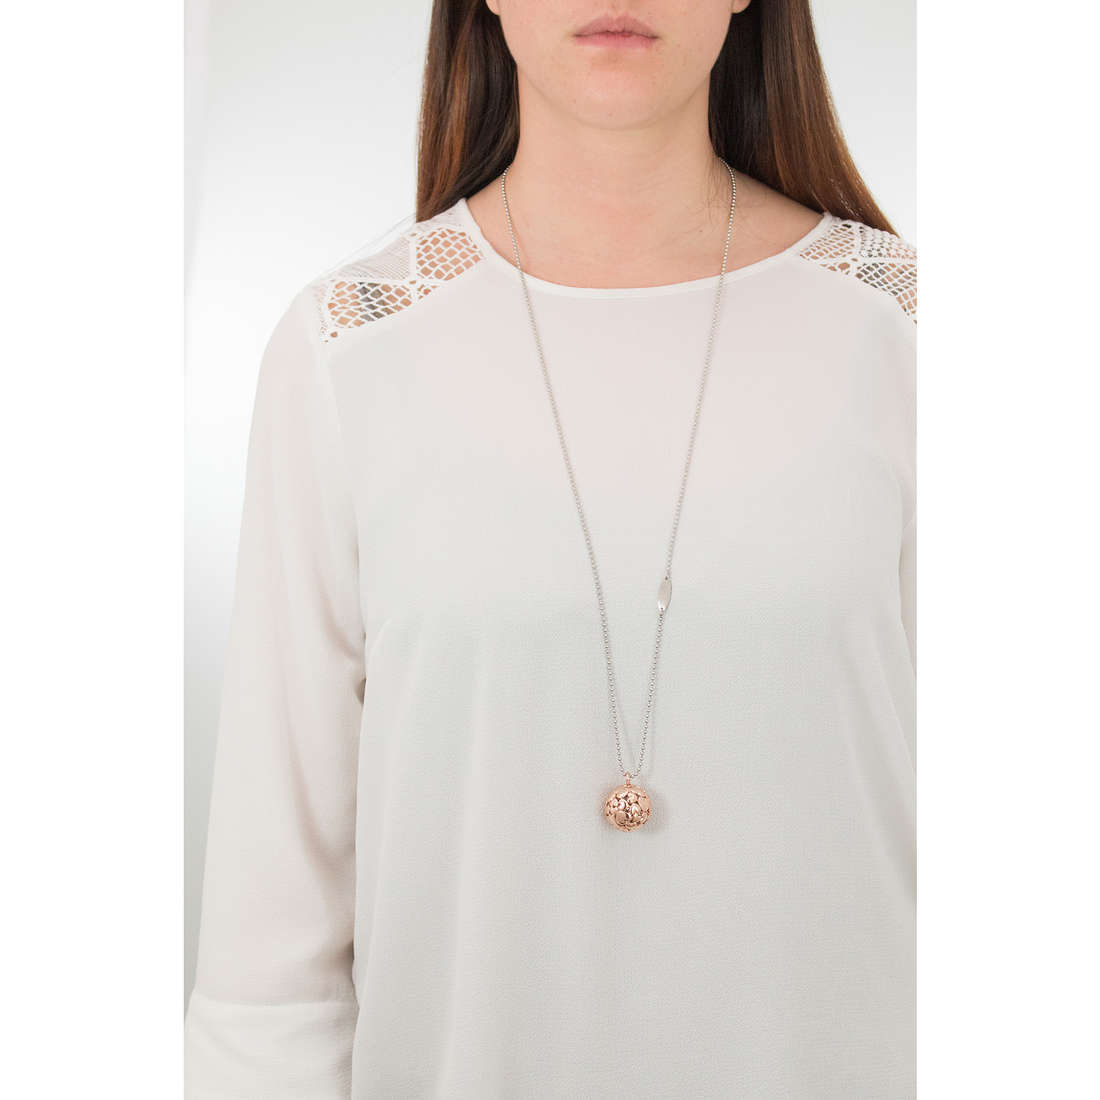 Luca Barra necklaces Babe woman LBCK1059 indosso